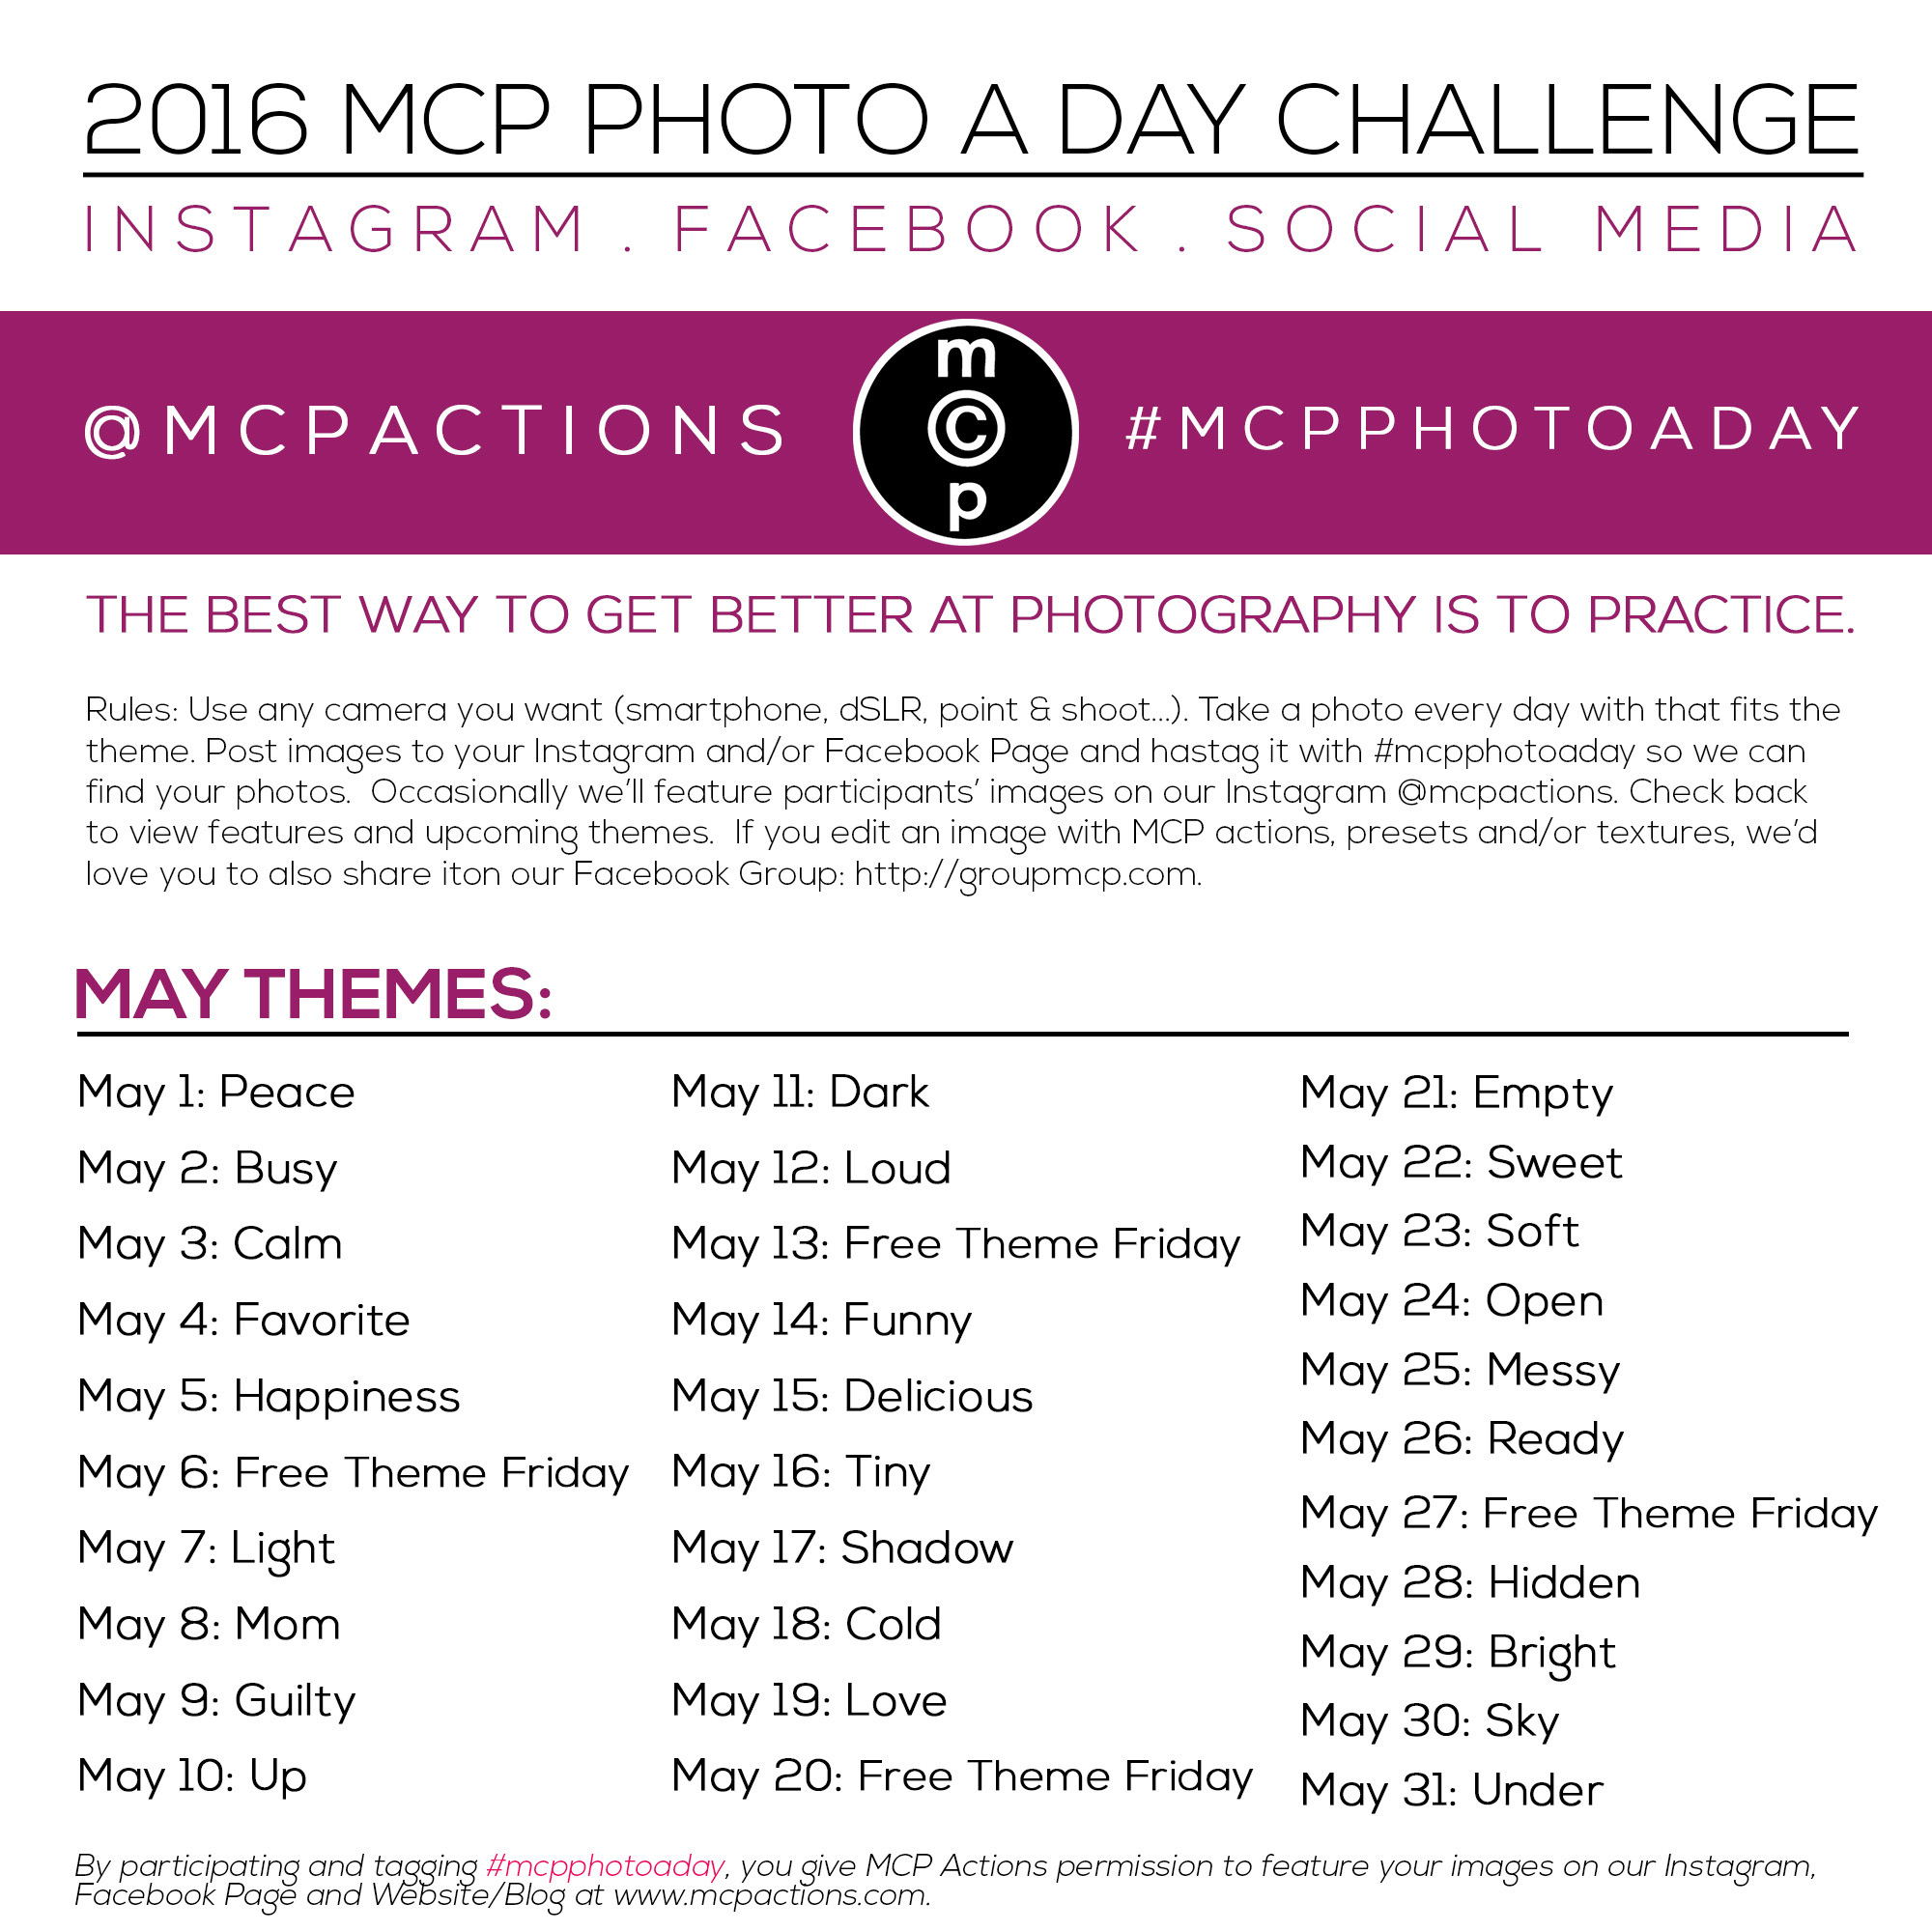 mcpphotoaday-may-2016-2 MCP Photo A Day Challenge: May 2016 Activities Announcements Assignments